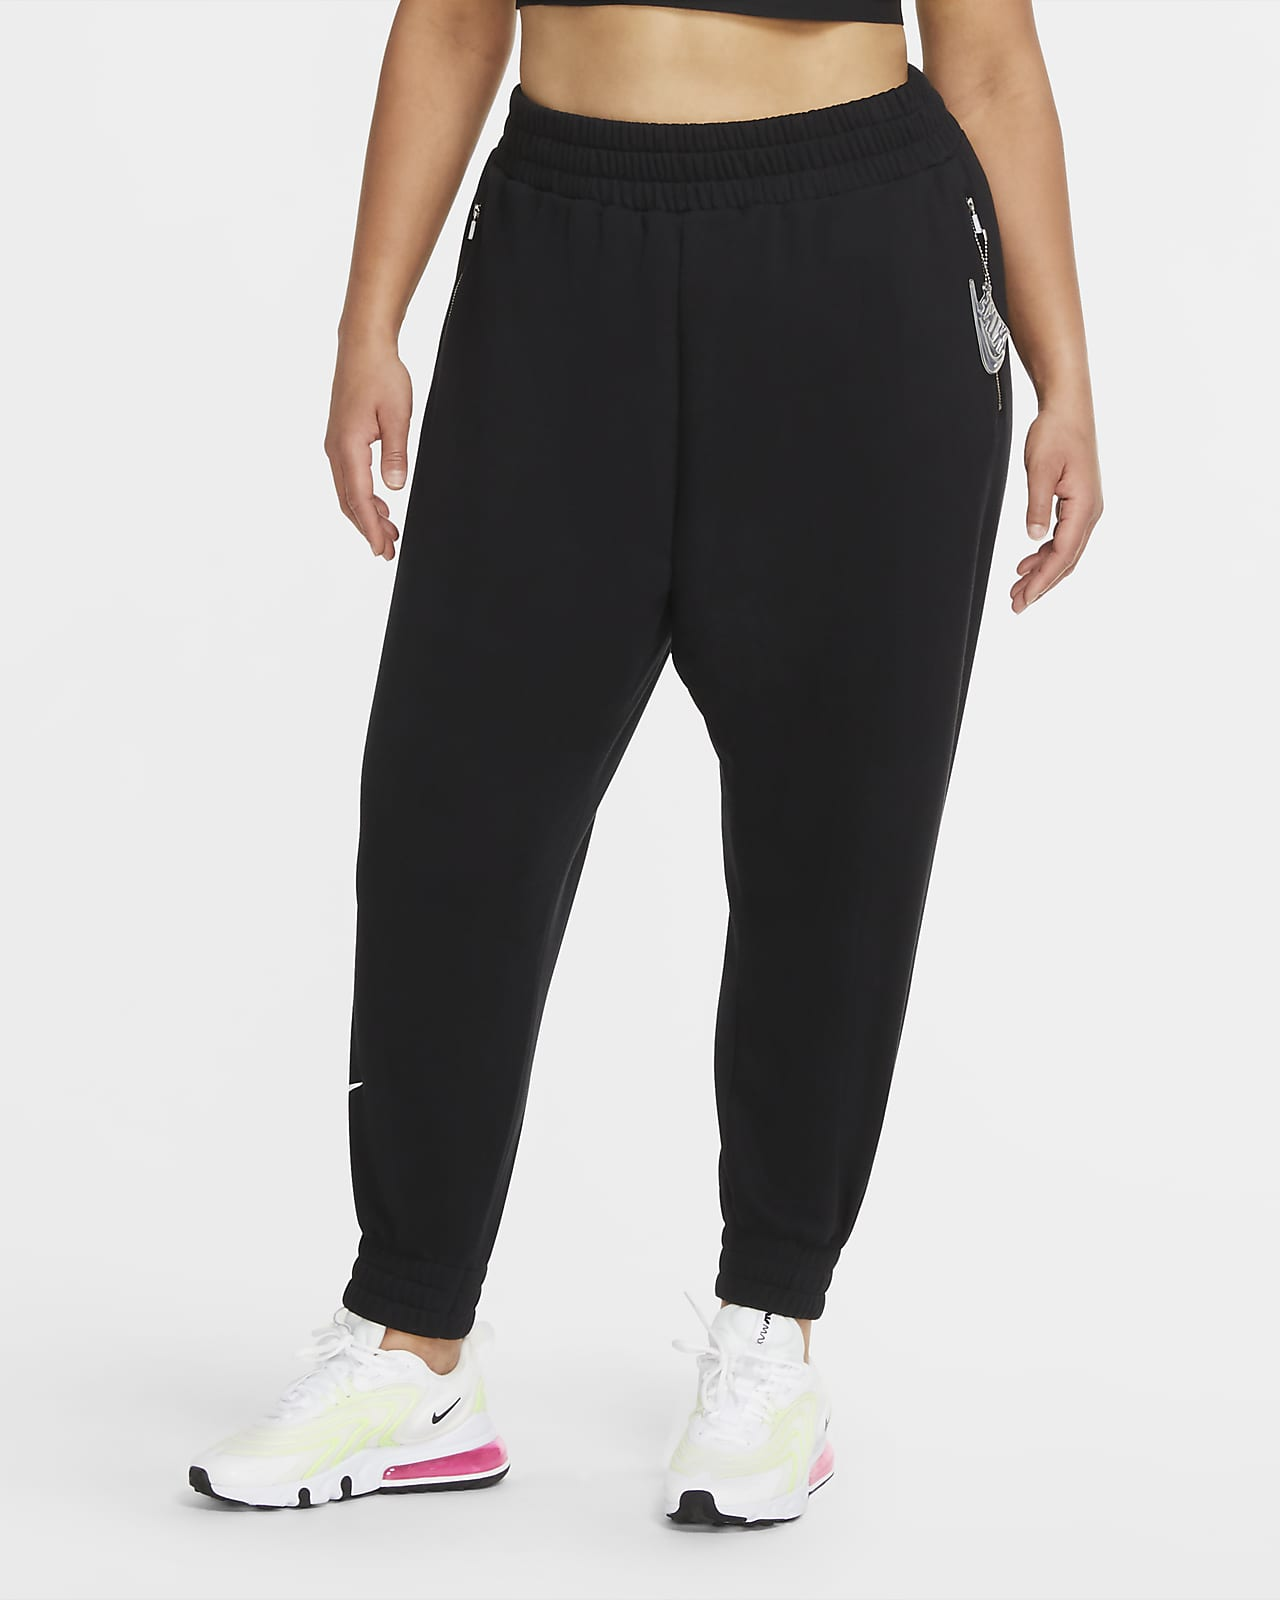 Nike Air Women's 7/8 Fleece Trousers (Plus Size)